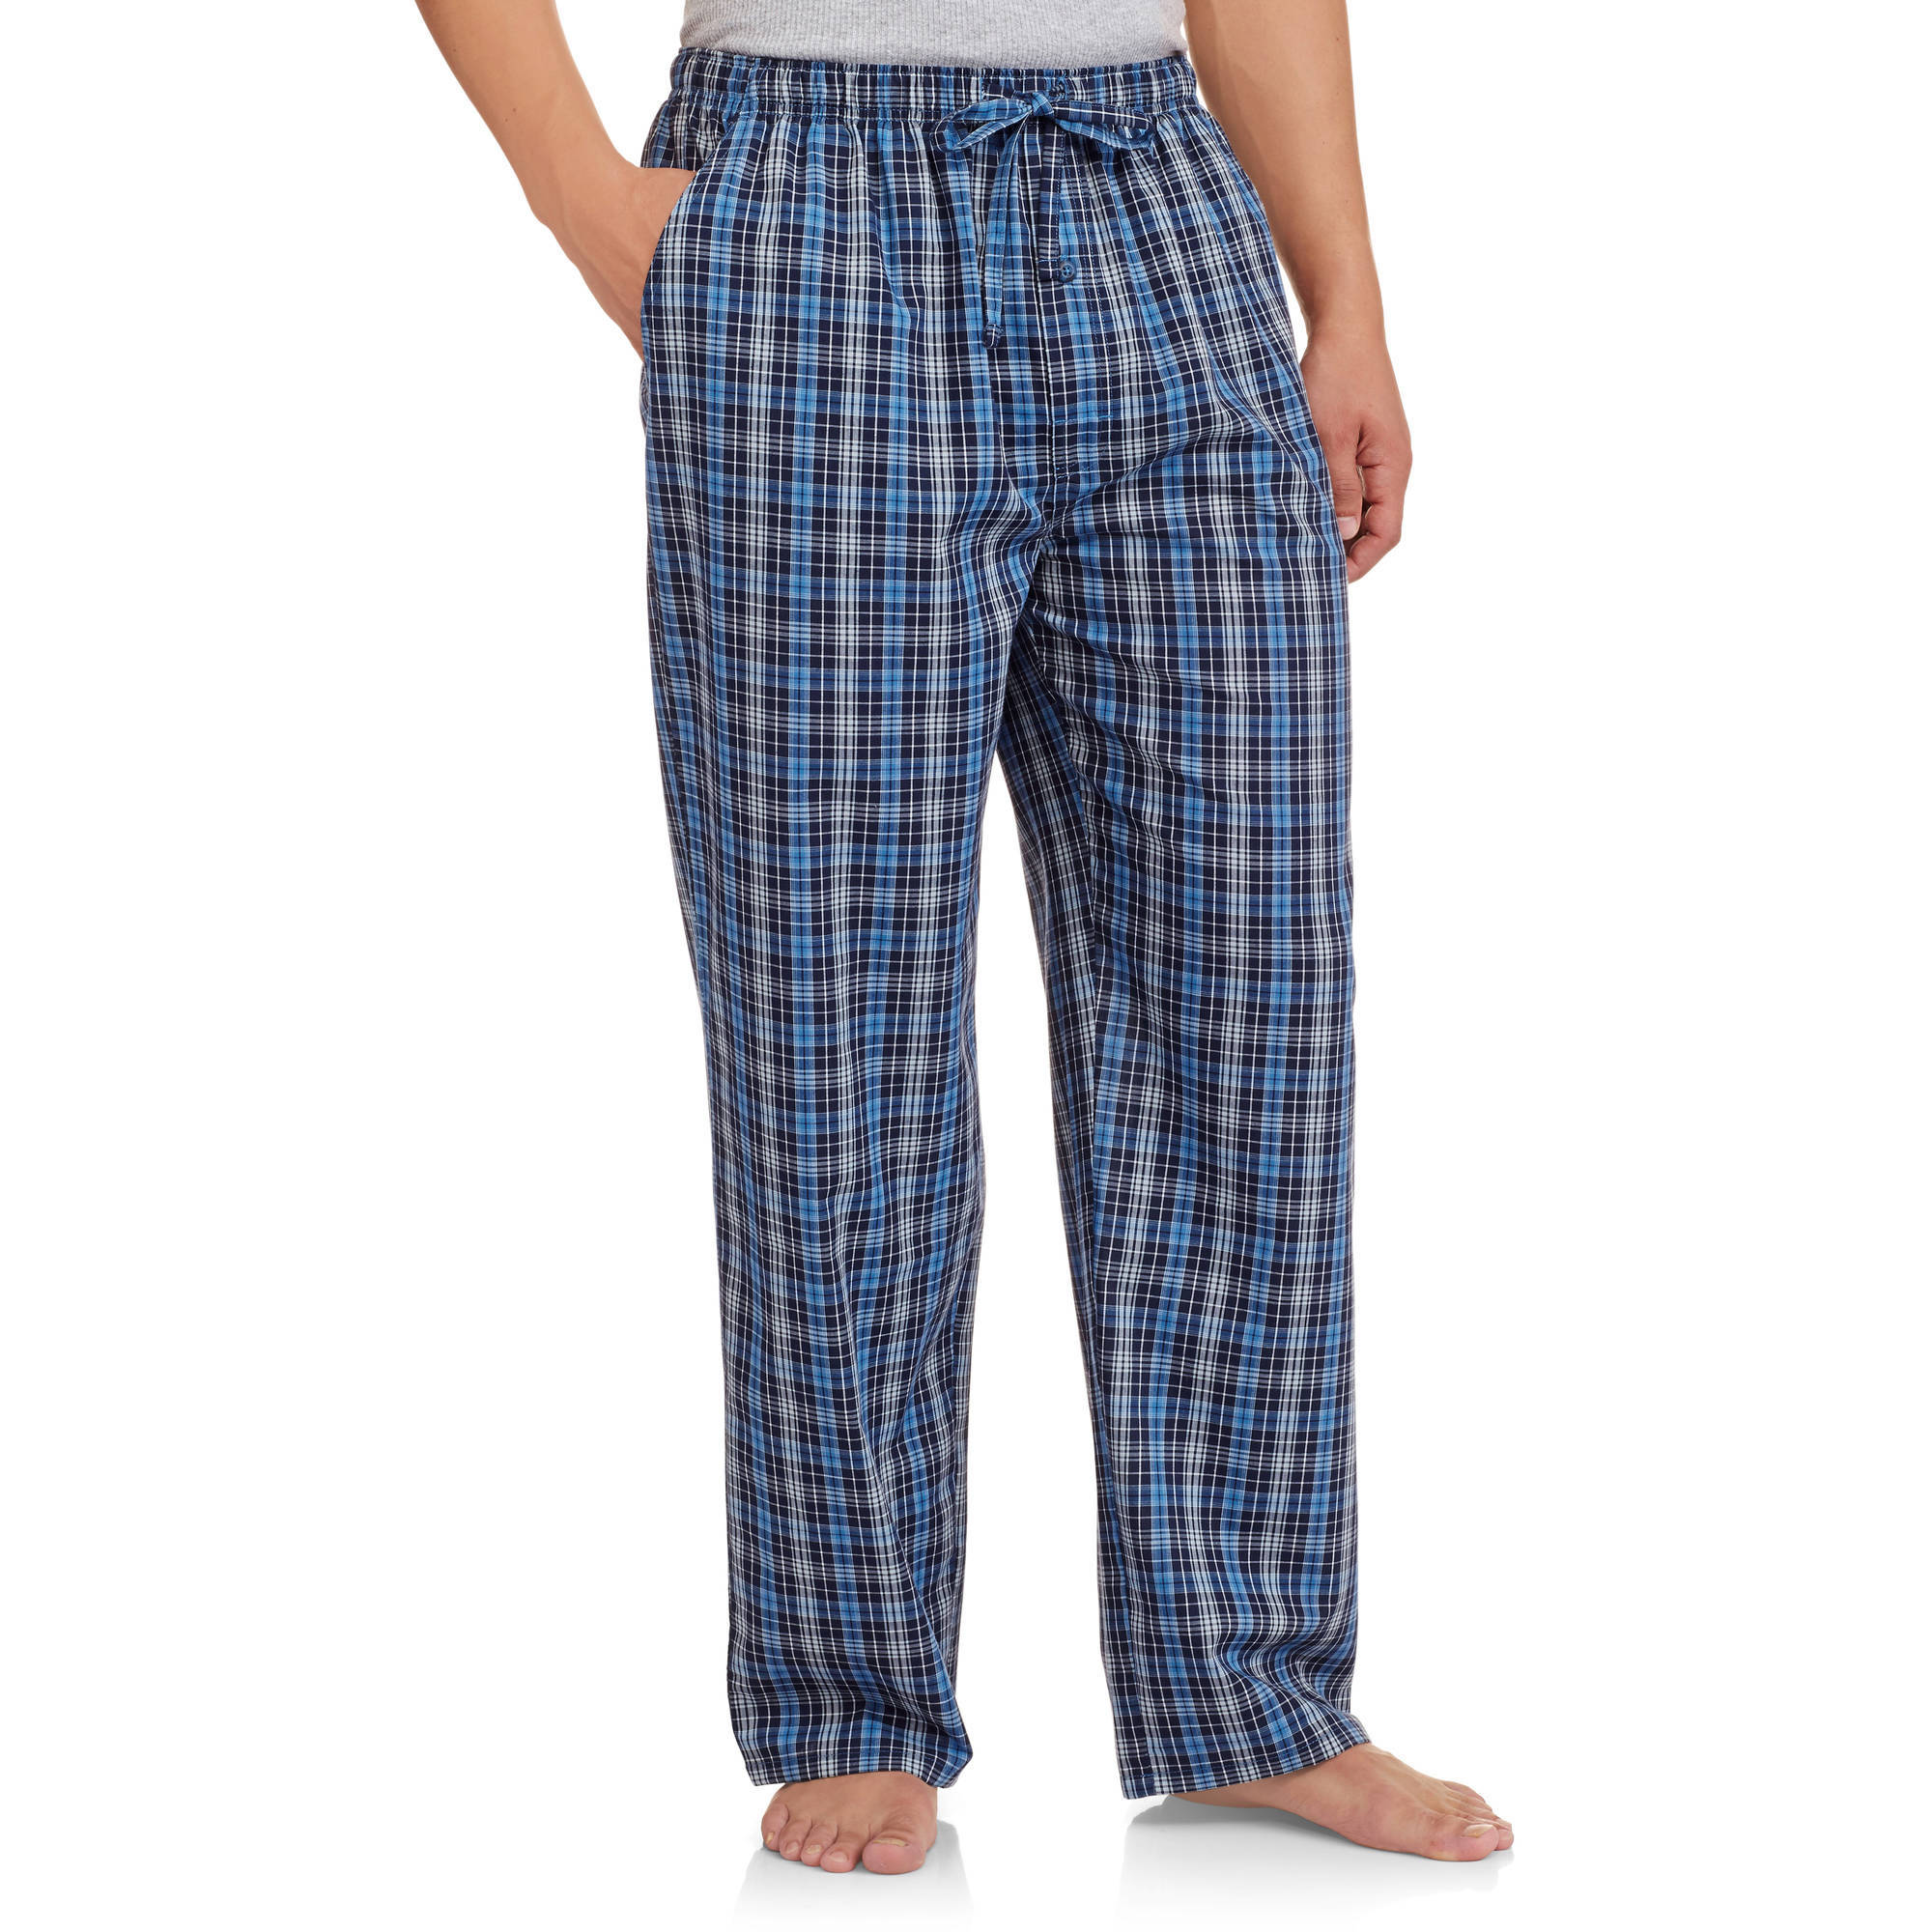 Fruit of the Loom Men's Woven Plaid Sleep Pant